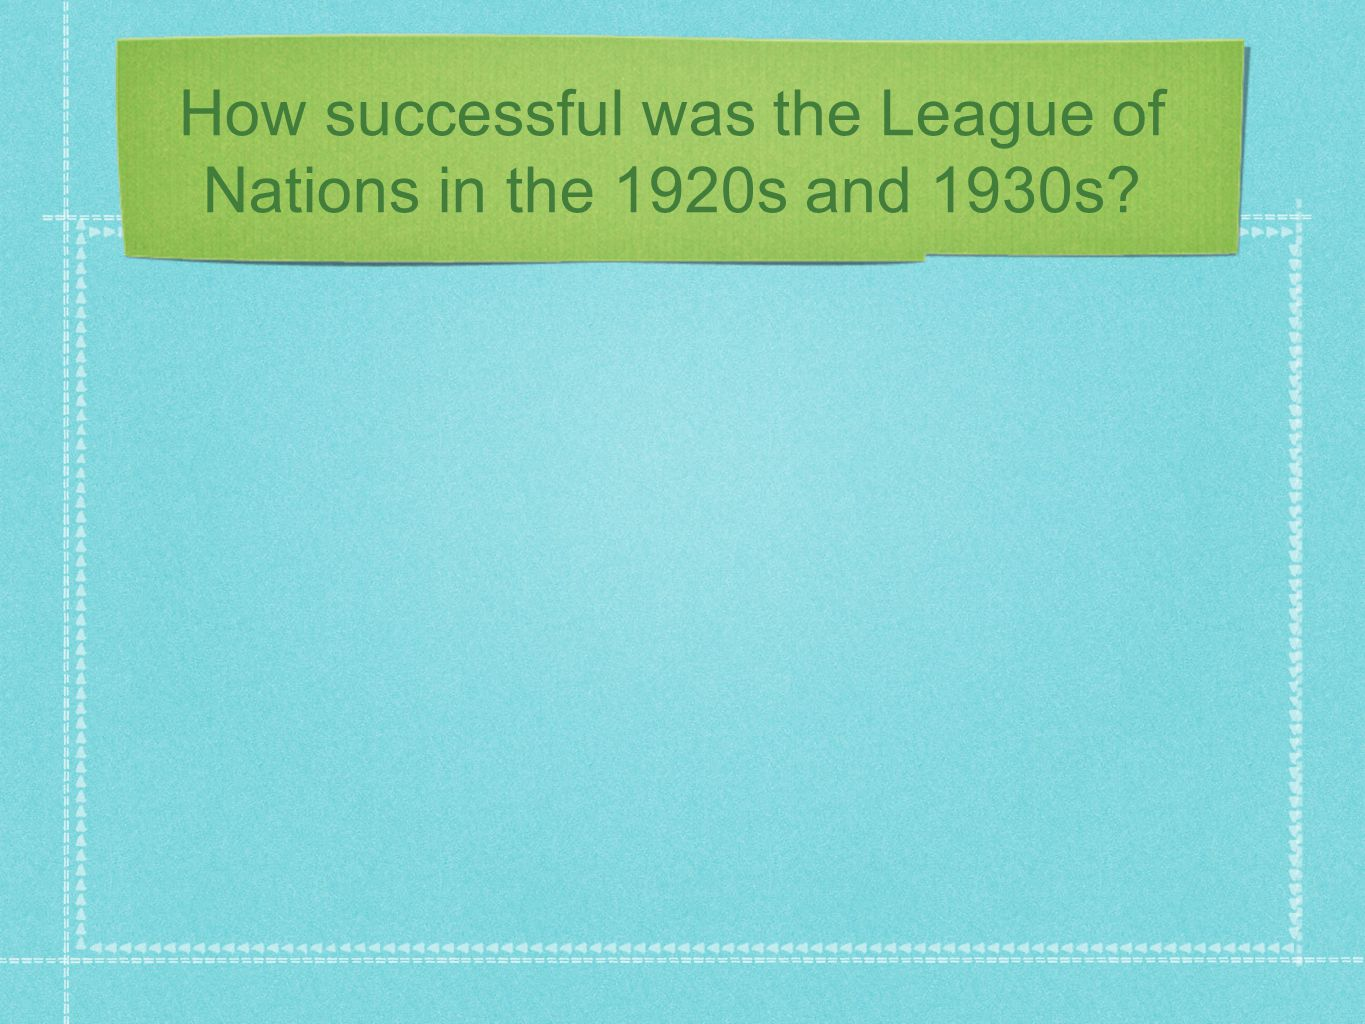 How successful was the League of Nations in the 1920s and 1930s